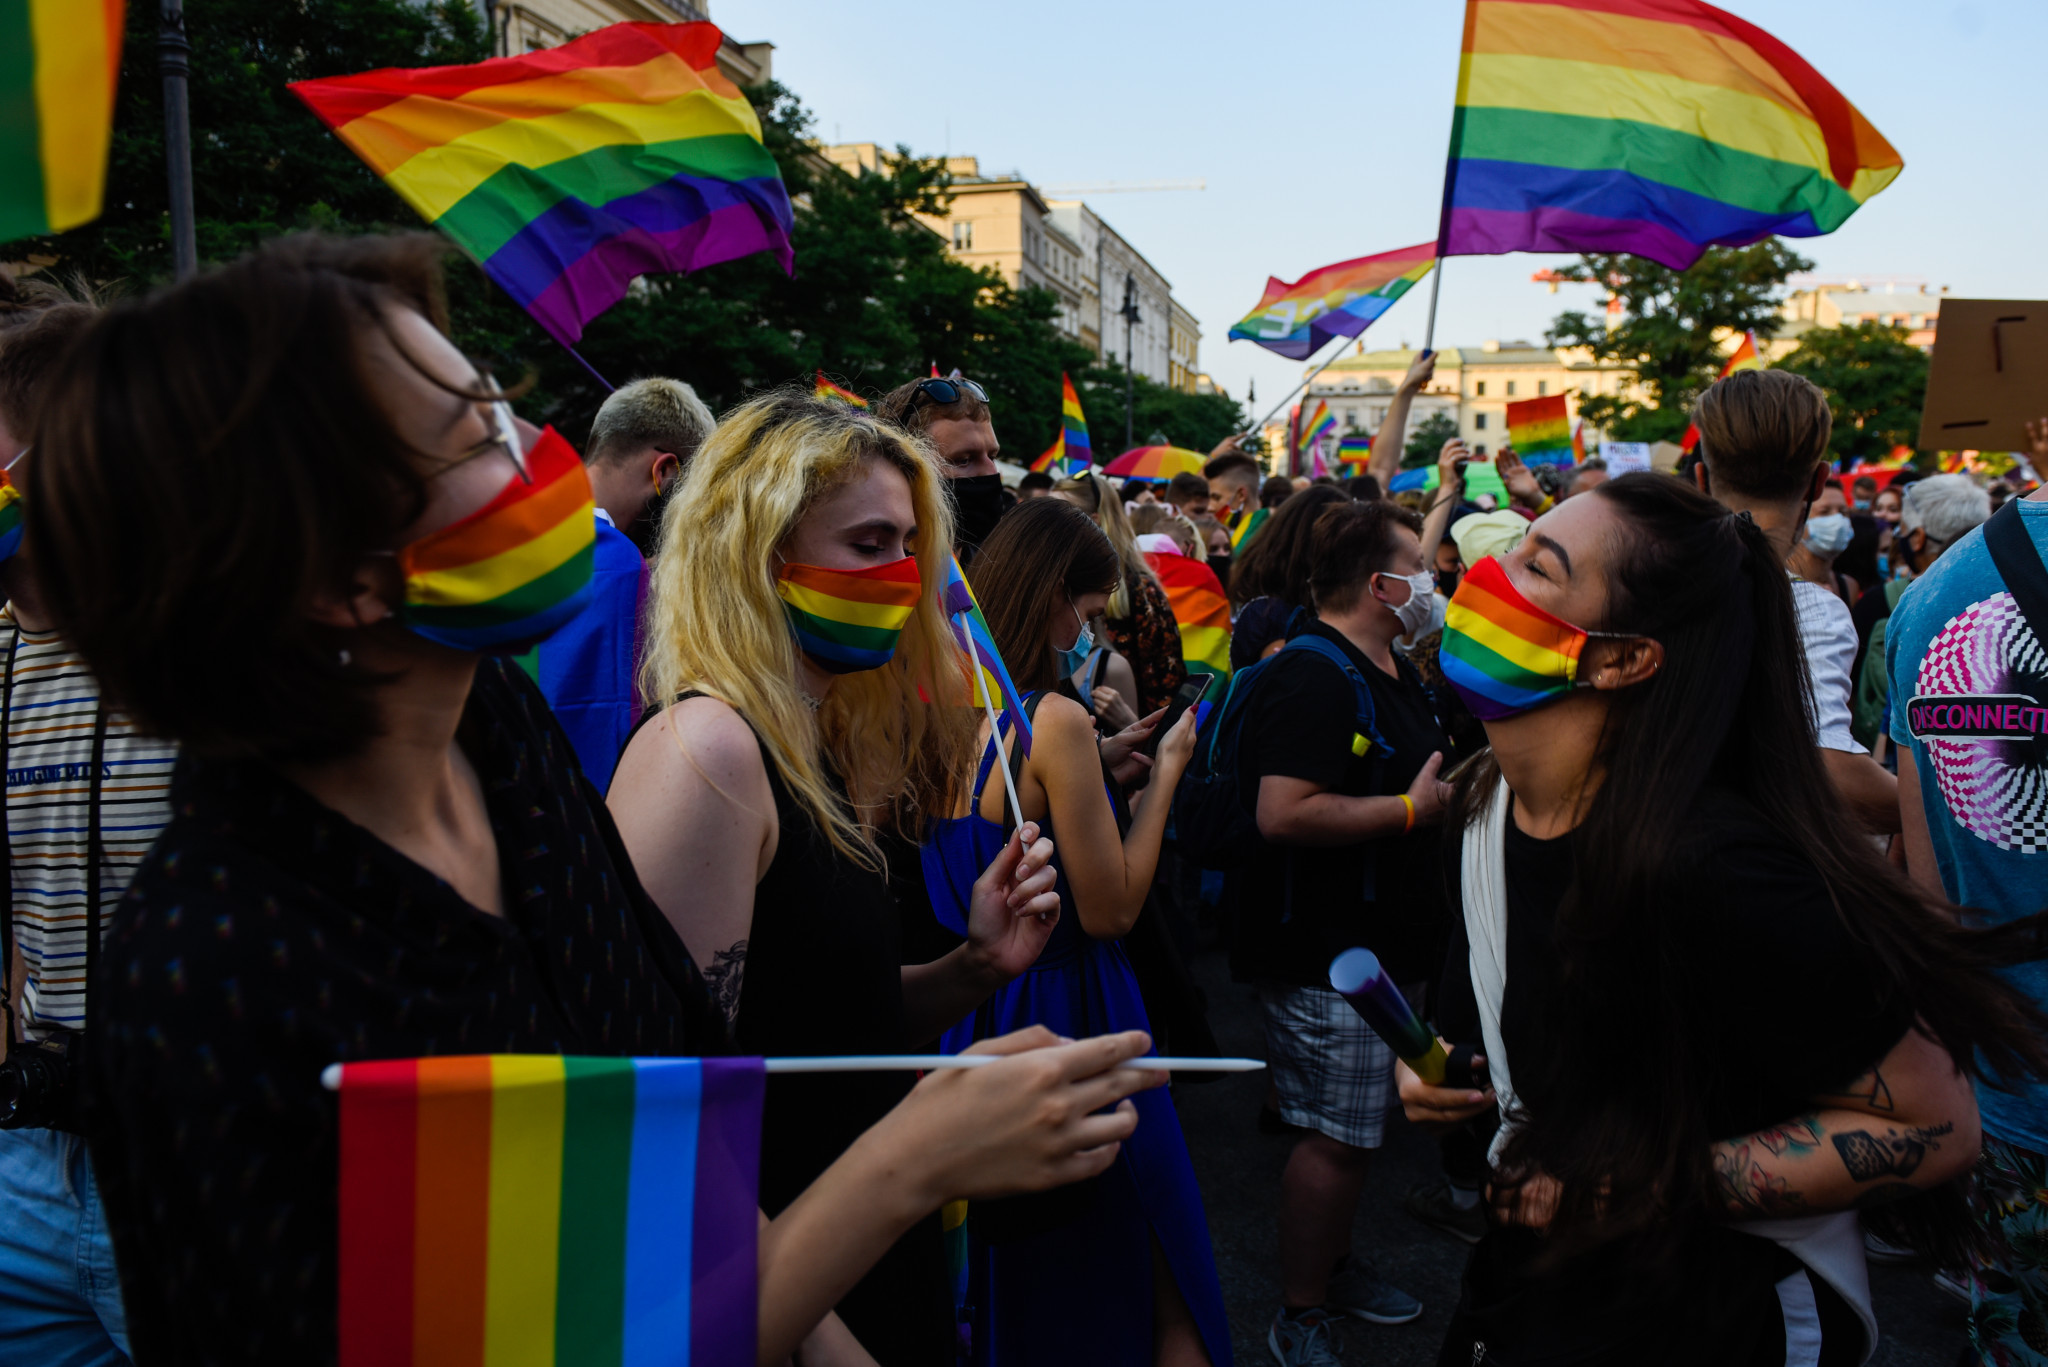 Kraków to fund Poland's first LGBT refuge hostel after criticism of 2023 European Games host's rights record